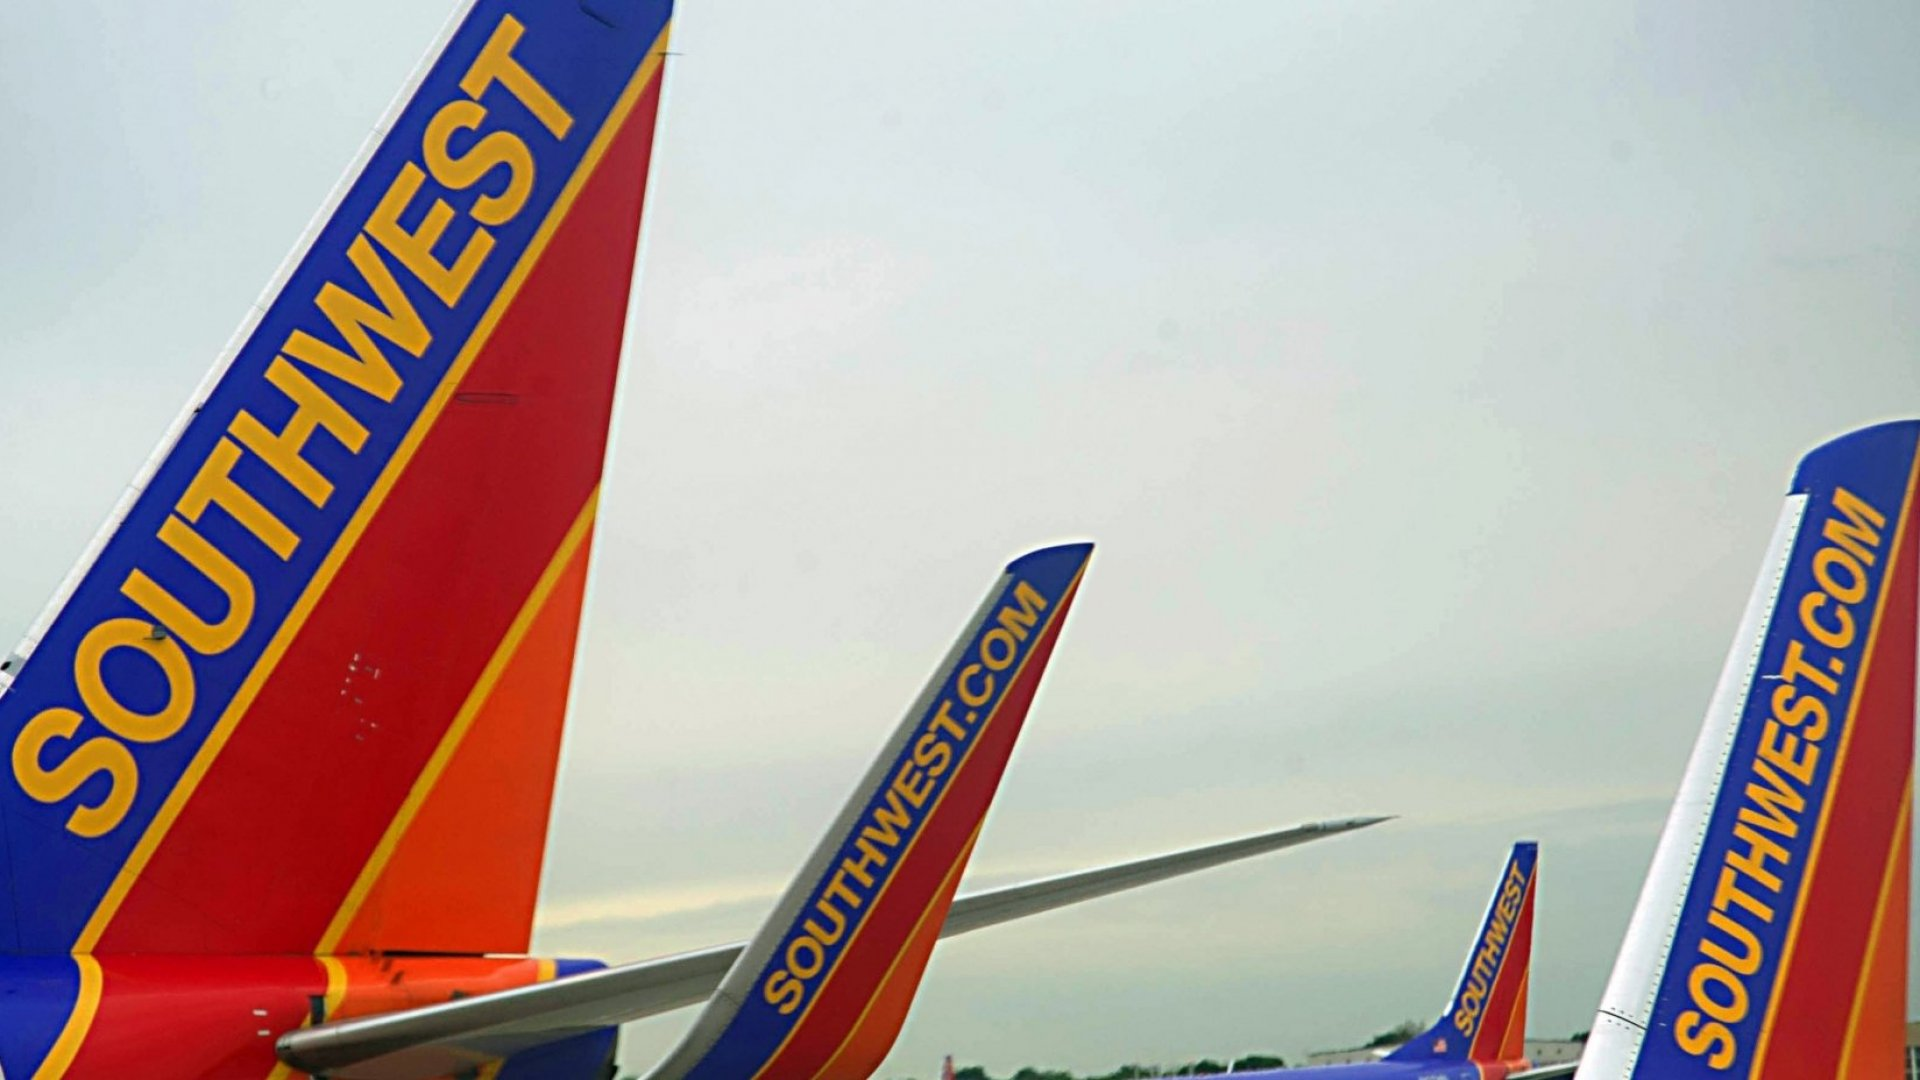 Southwest Is Rated the Top U.S. Airline, but People Overwhelmingly Prefer This Surprising Alternative (New Survey)